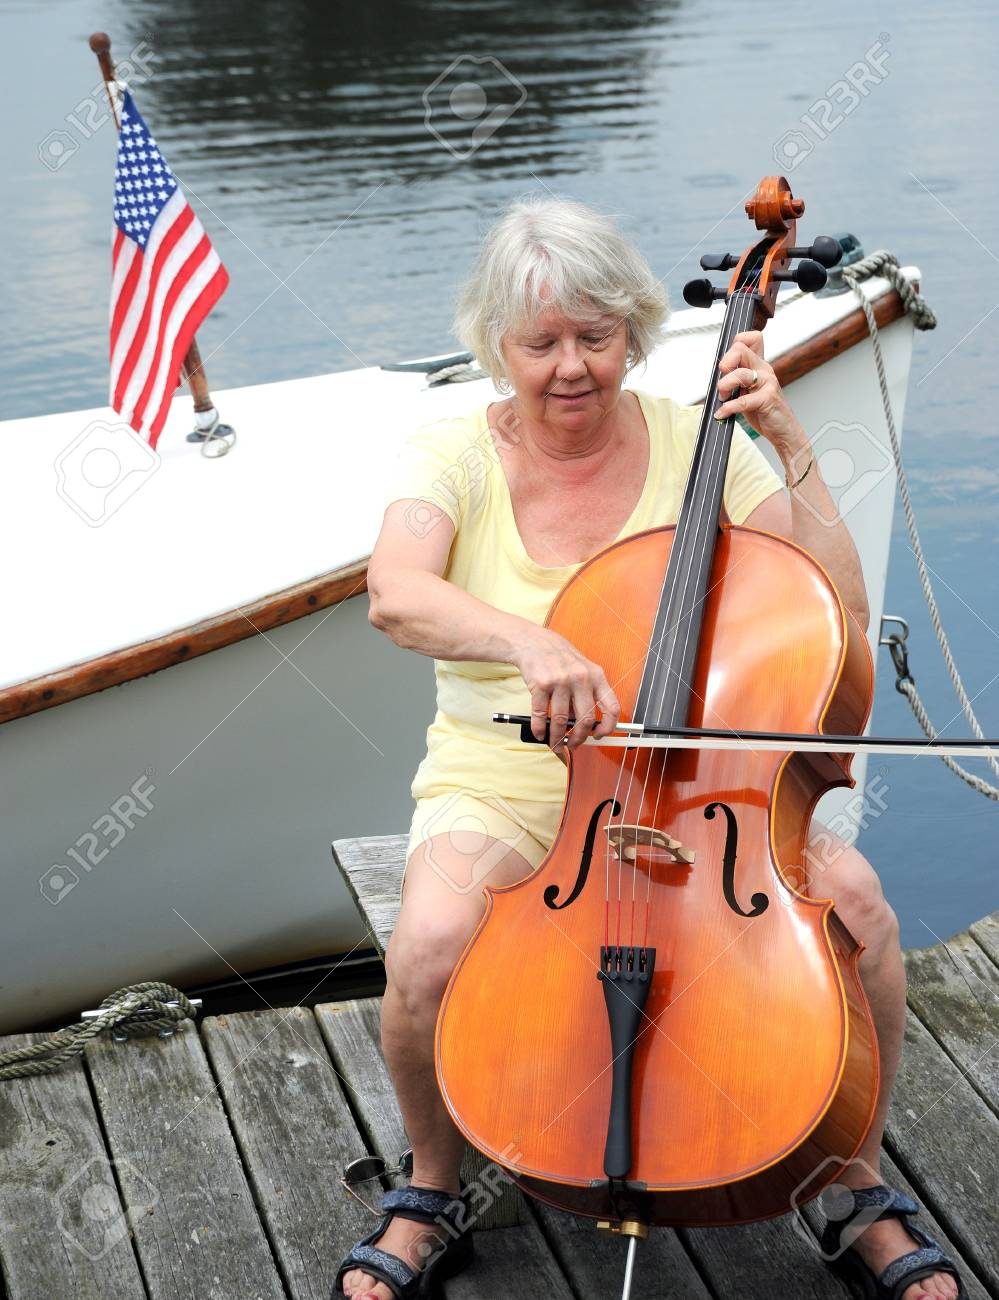 Female cellist performing on the lake. Stock Photo - 11071296